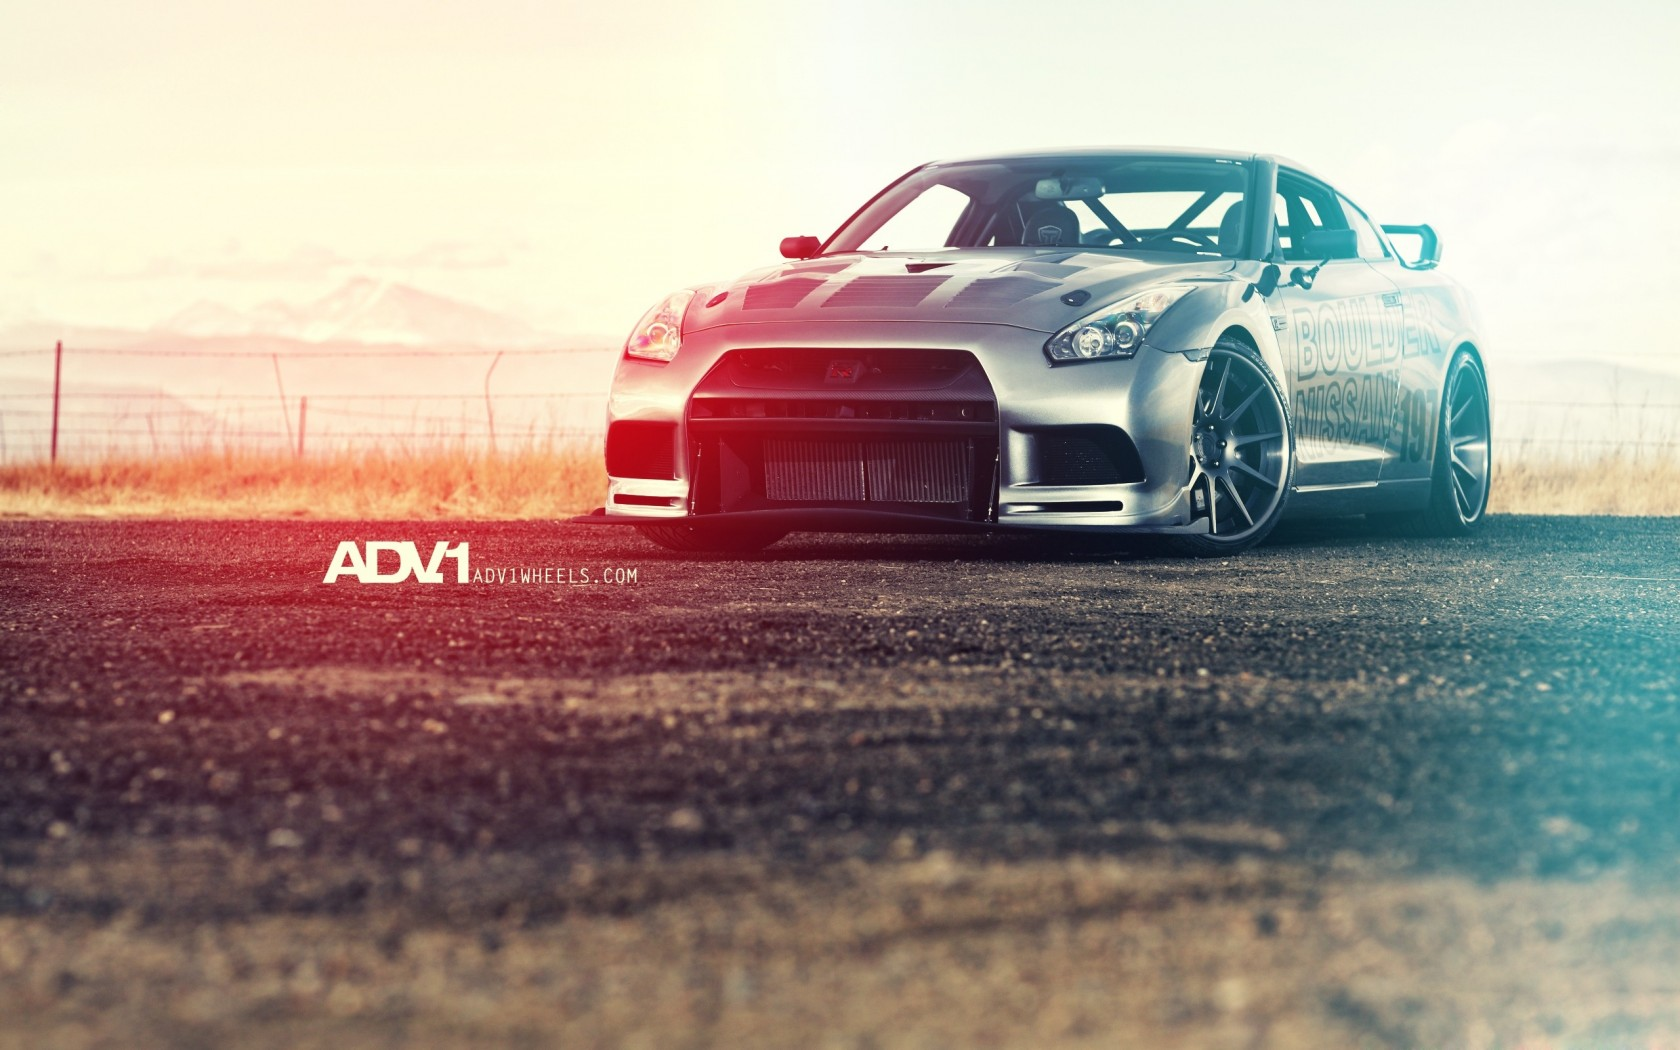 Dope Car Wallpapers Nissan Gtr Adv1 Wheels Wallpaper Hd Car Wallpapers Id